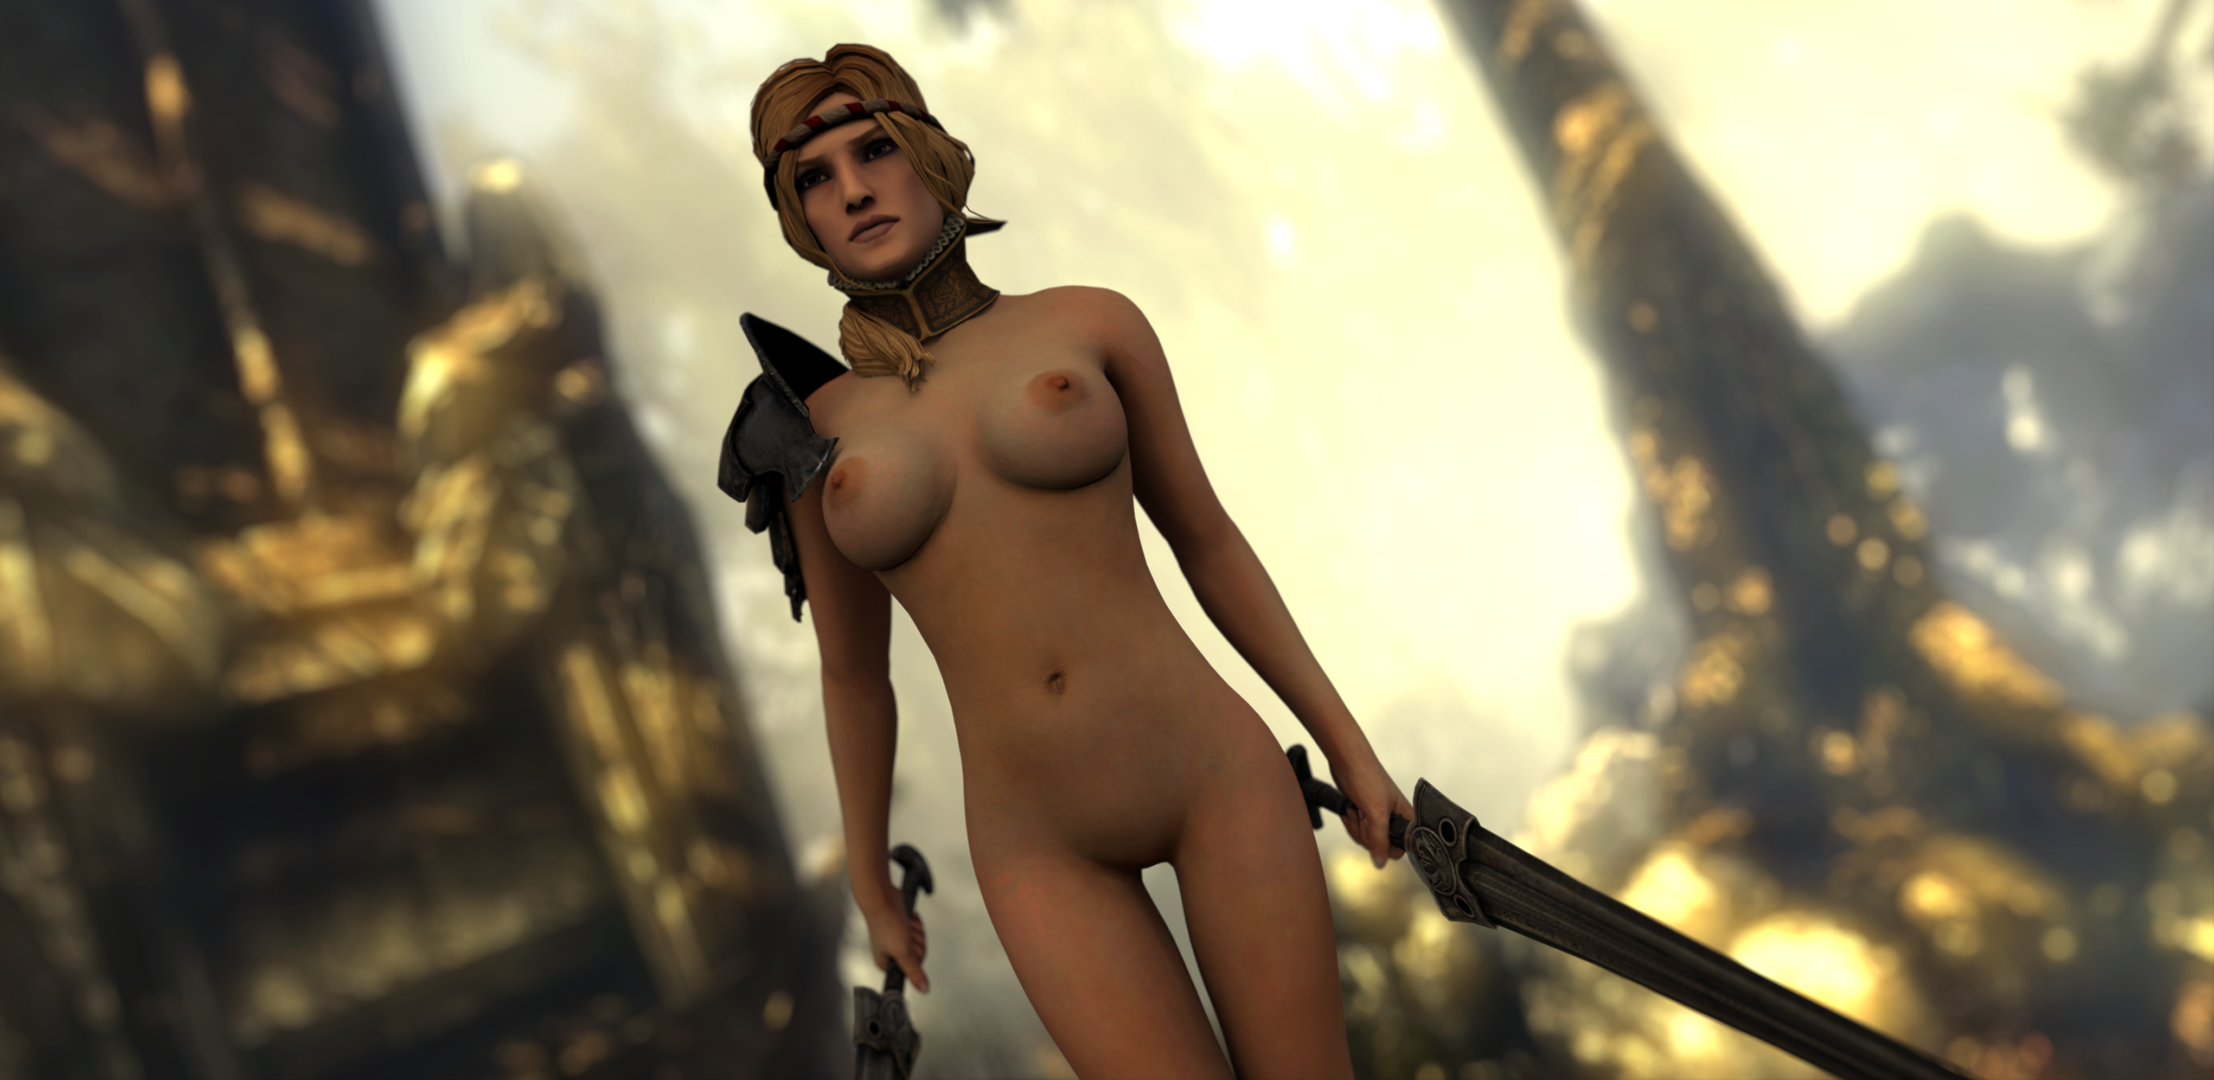 The witcher 1 nude patch exposed tube